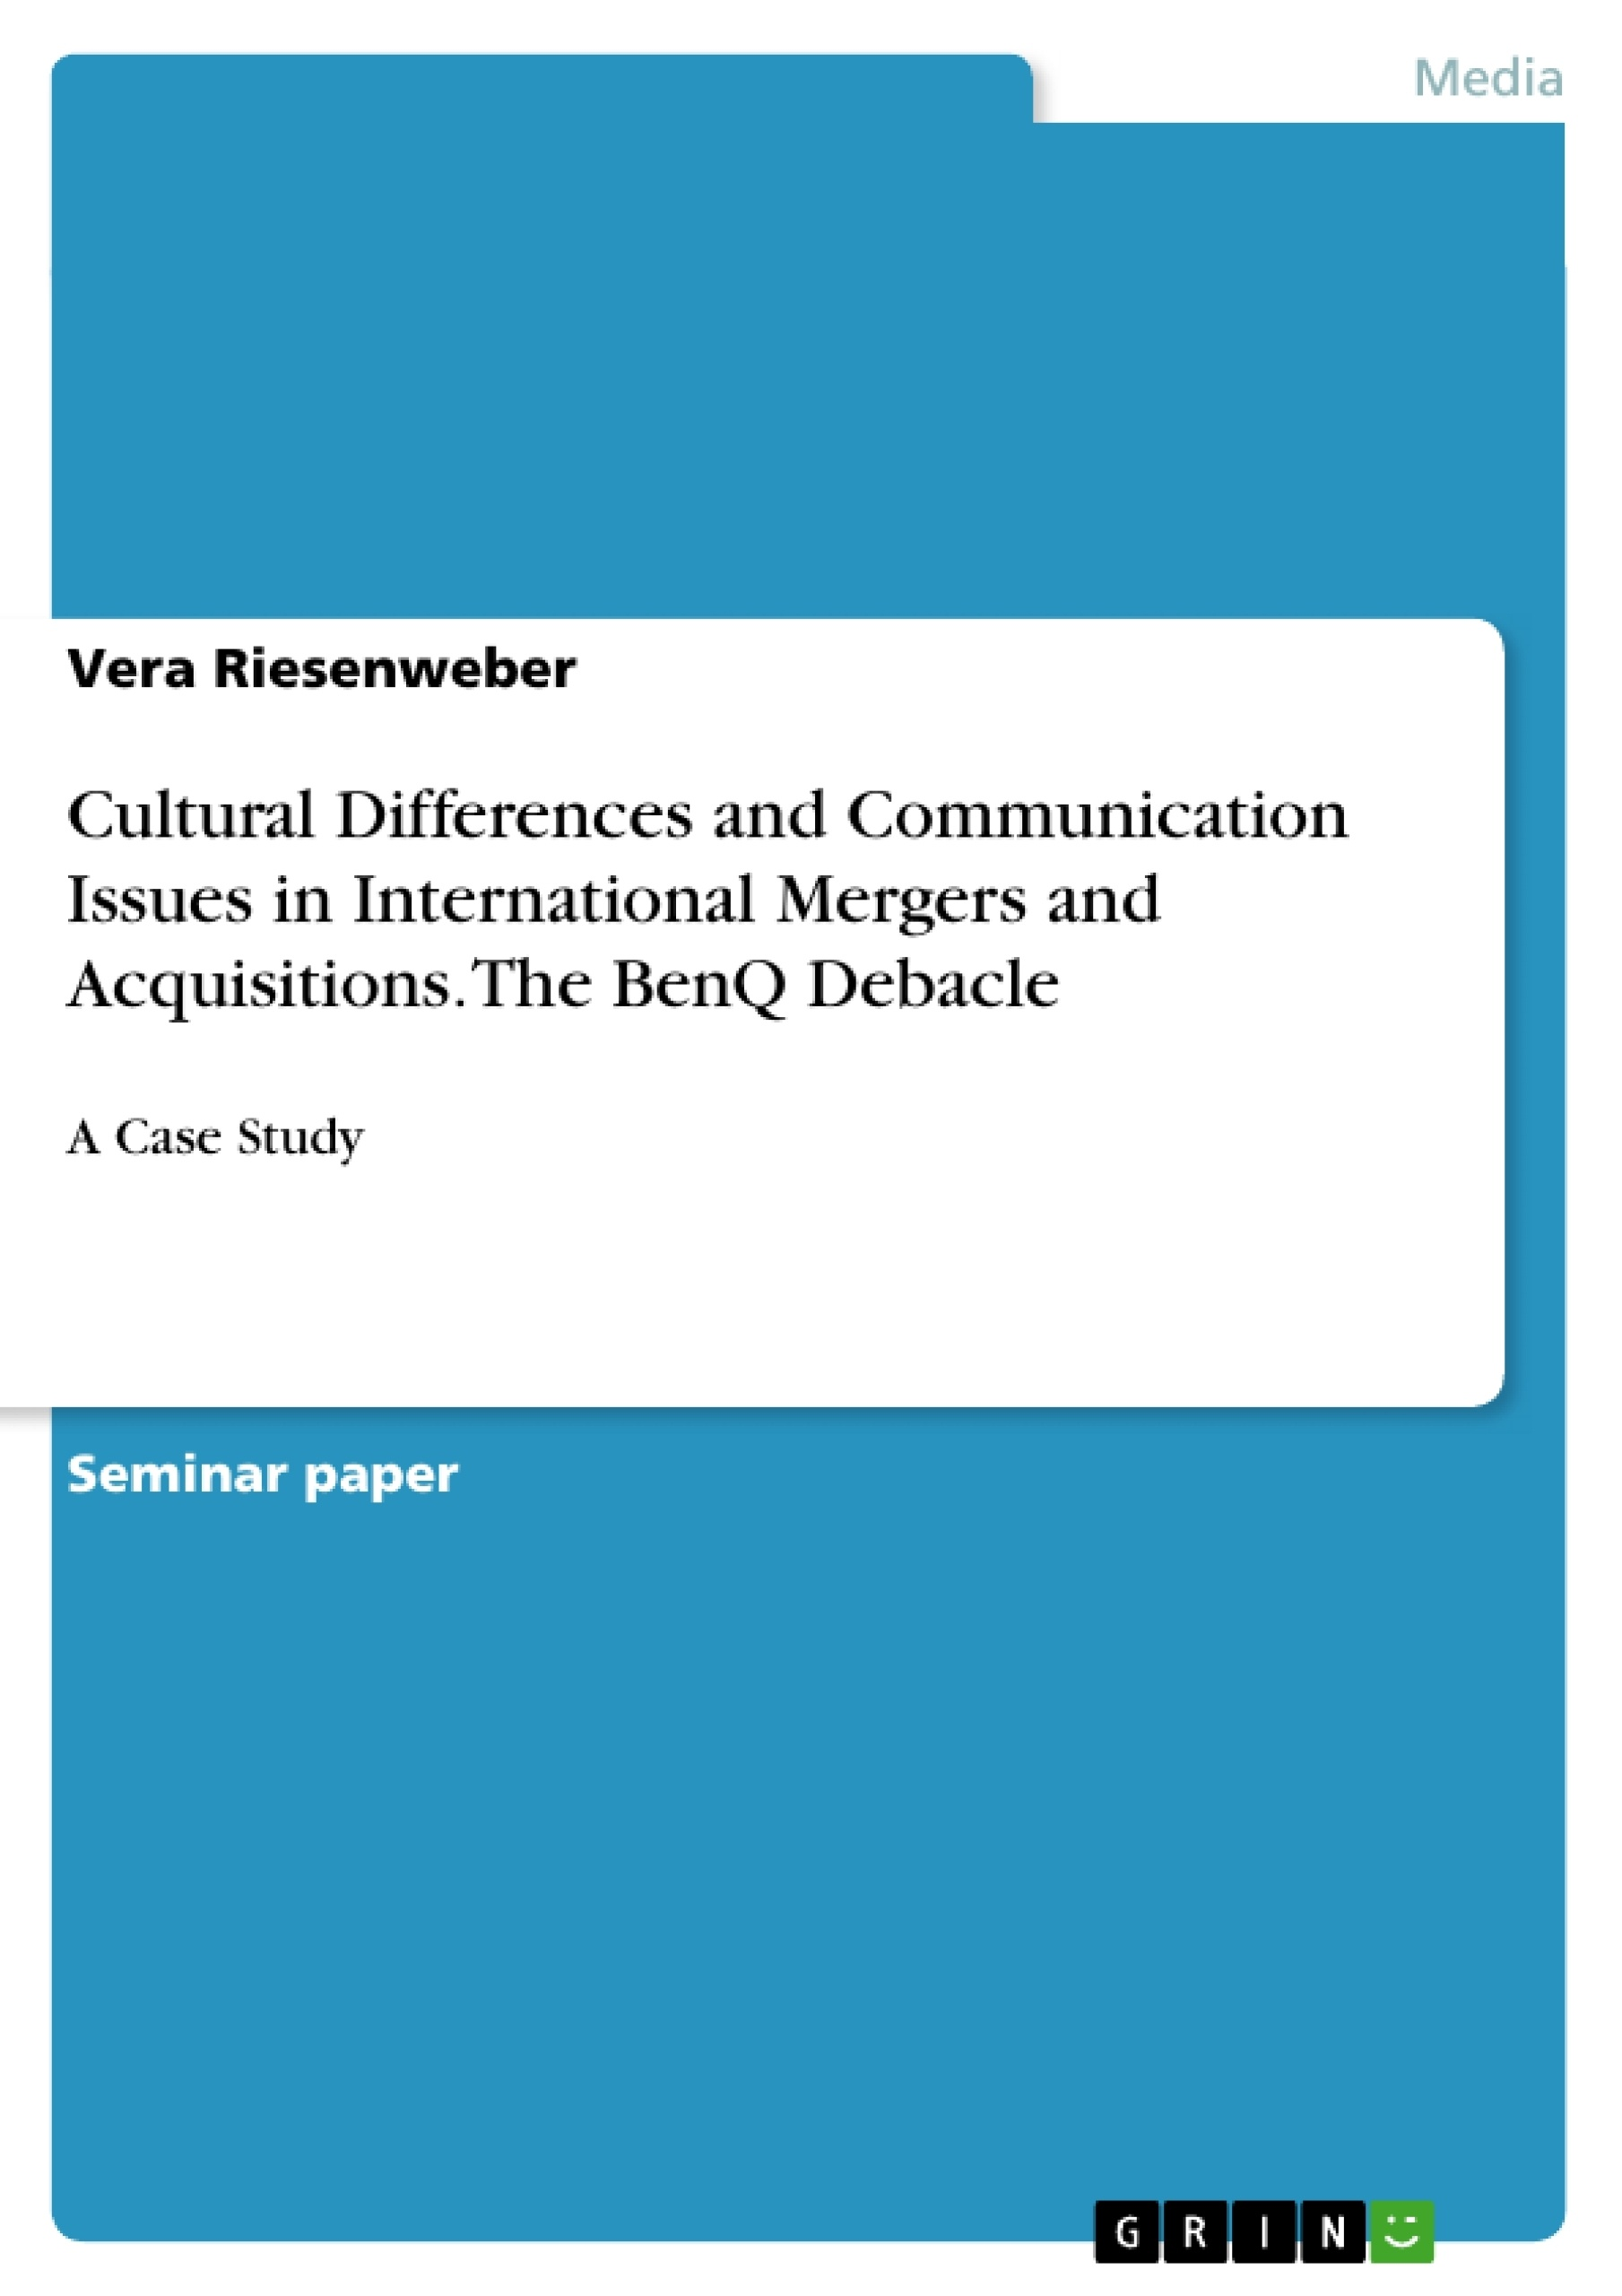 Title: Cultural Differences and Communication Issues in International Mergers and Acquisitions. The BenQ Debacle